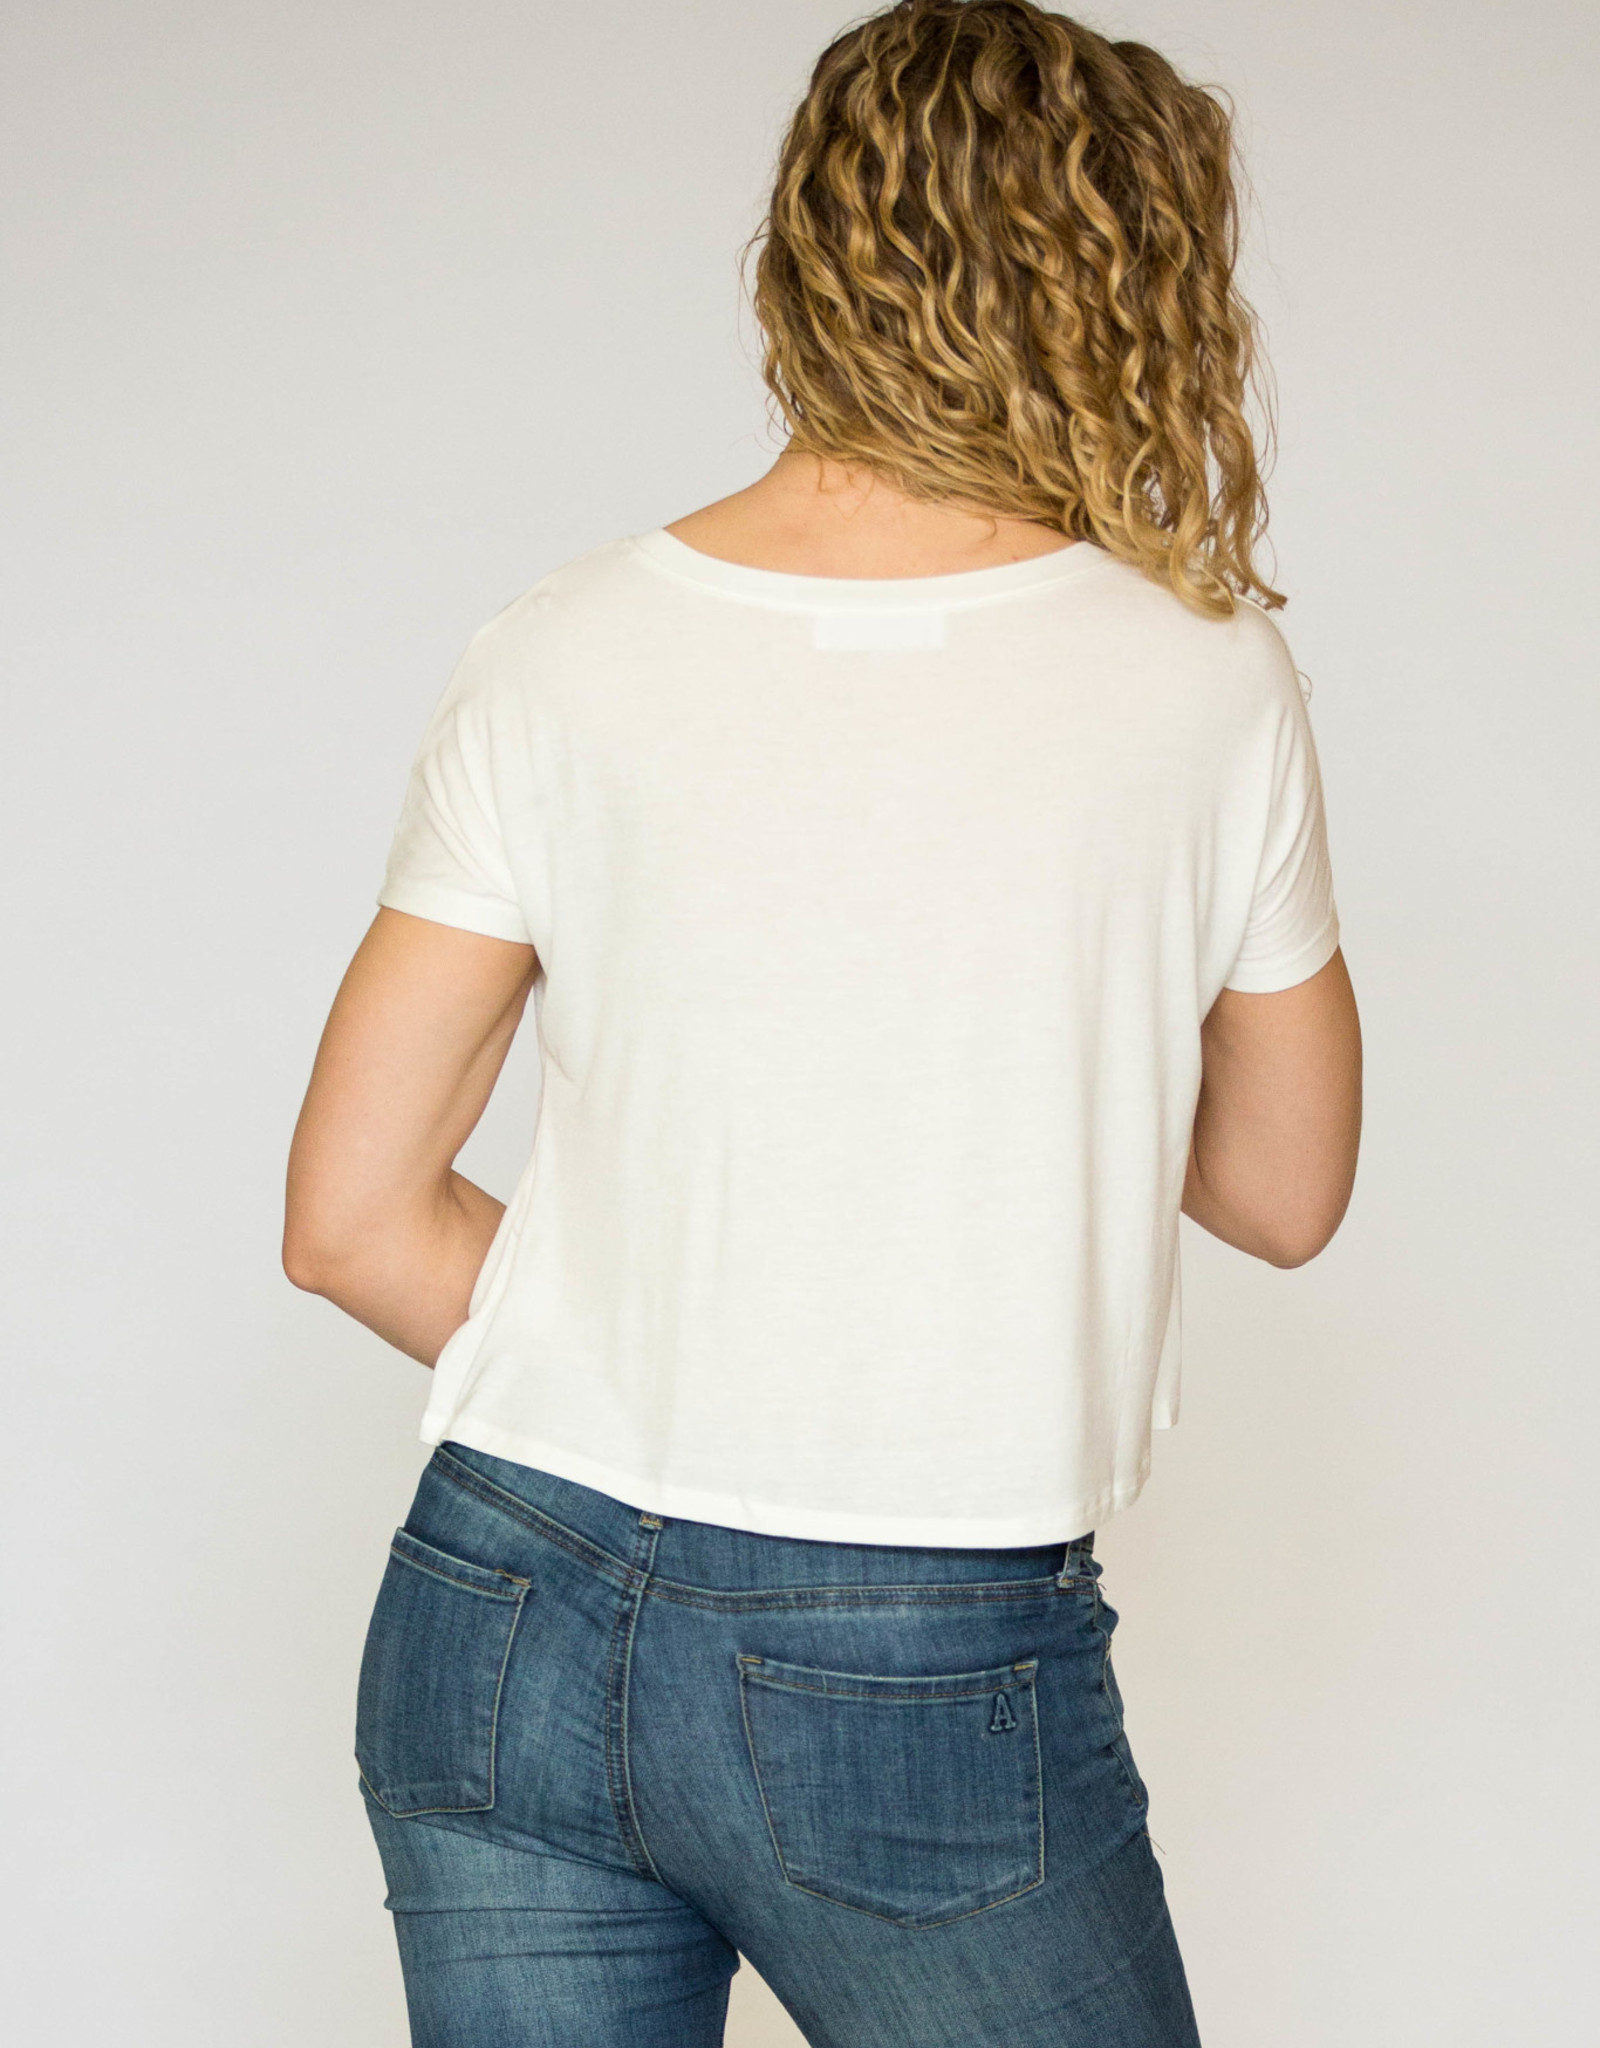 HYFVE Cropped Knot Tee